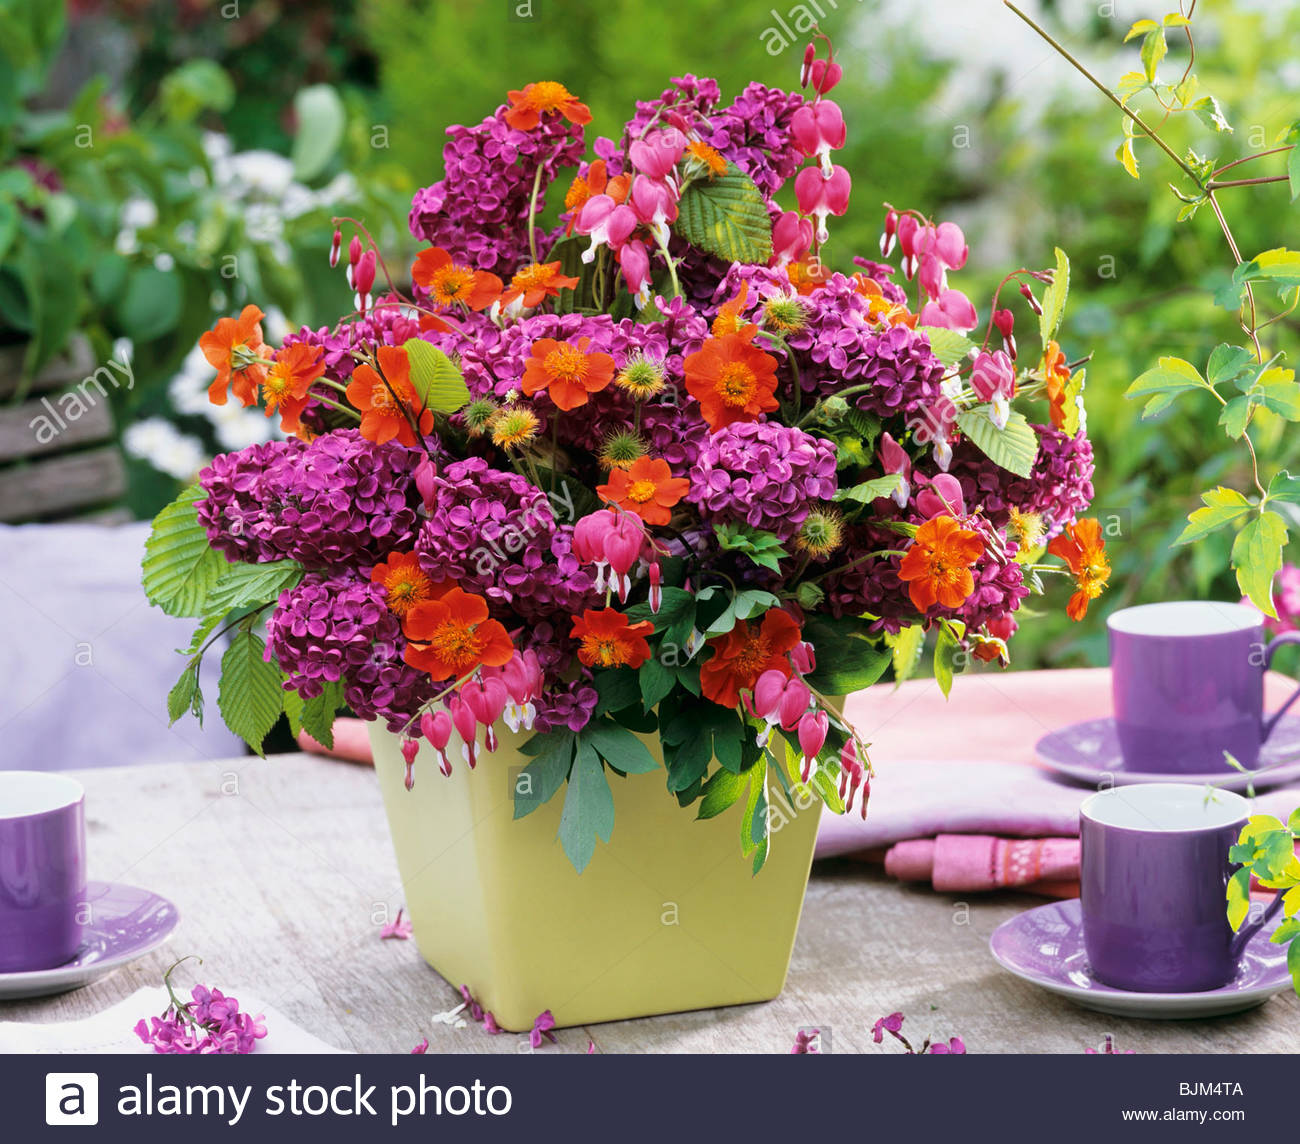 Arrangement of lilac geum and bleeding heart stock photo 28717034 arrangement of lilac geum and bleeding heart izmirmasajfo